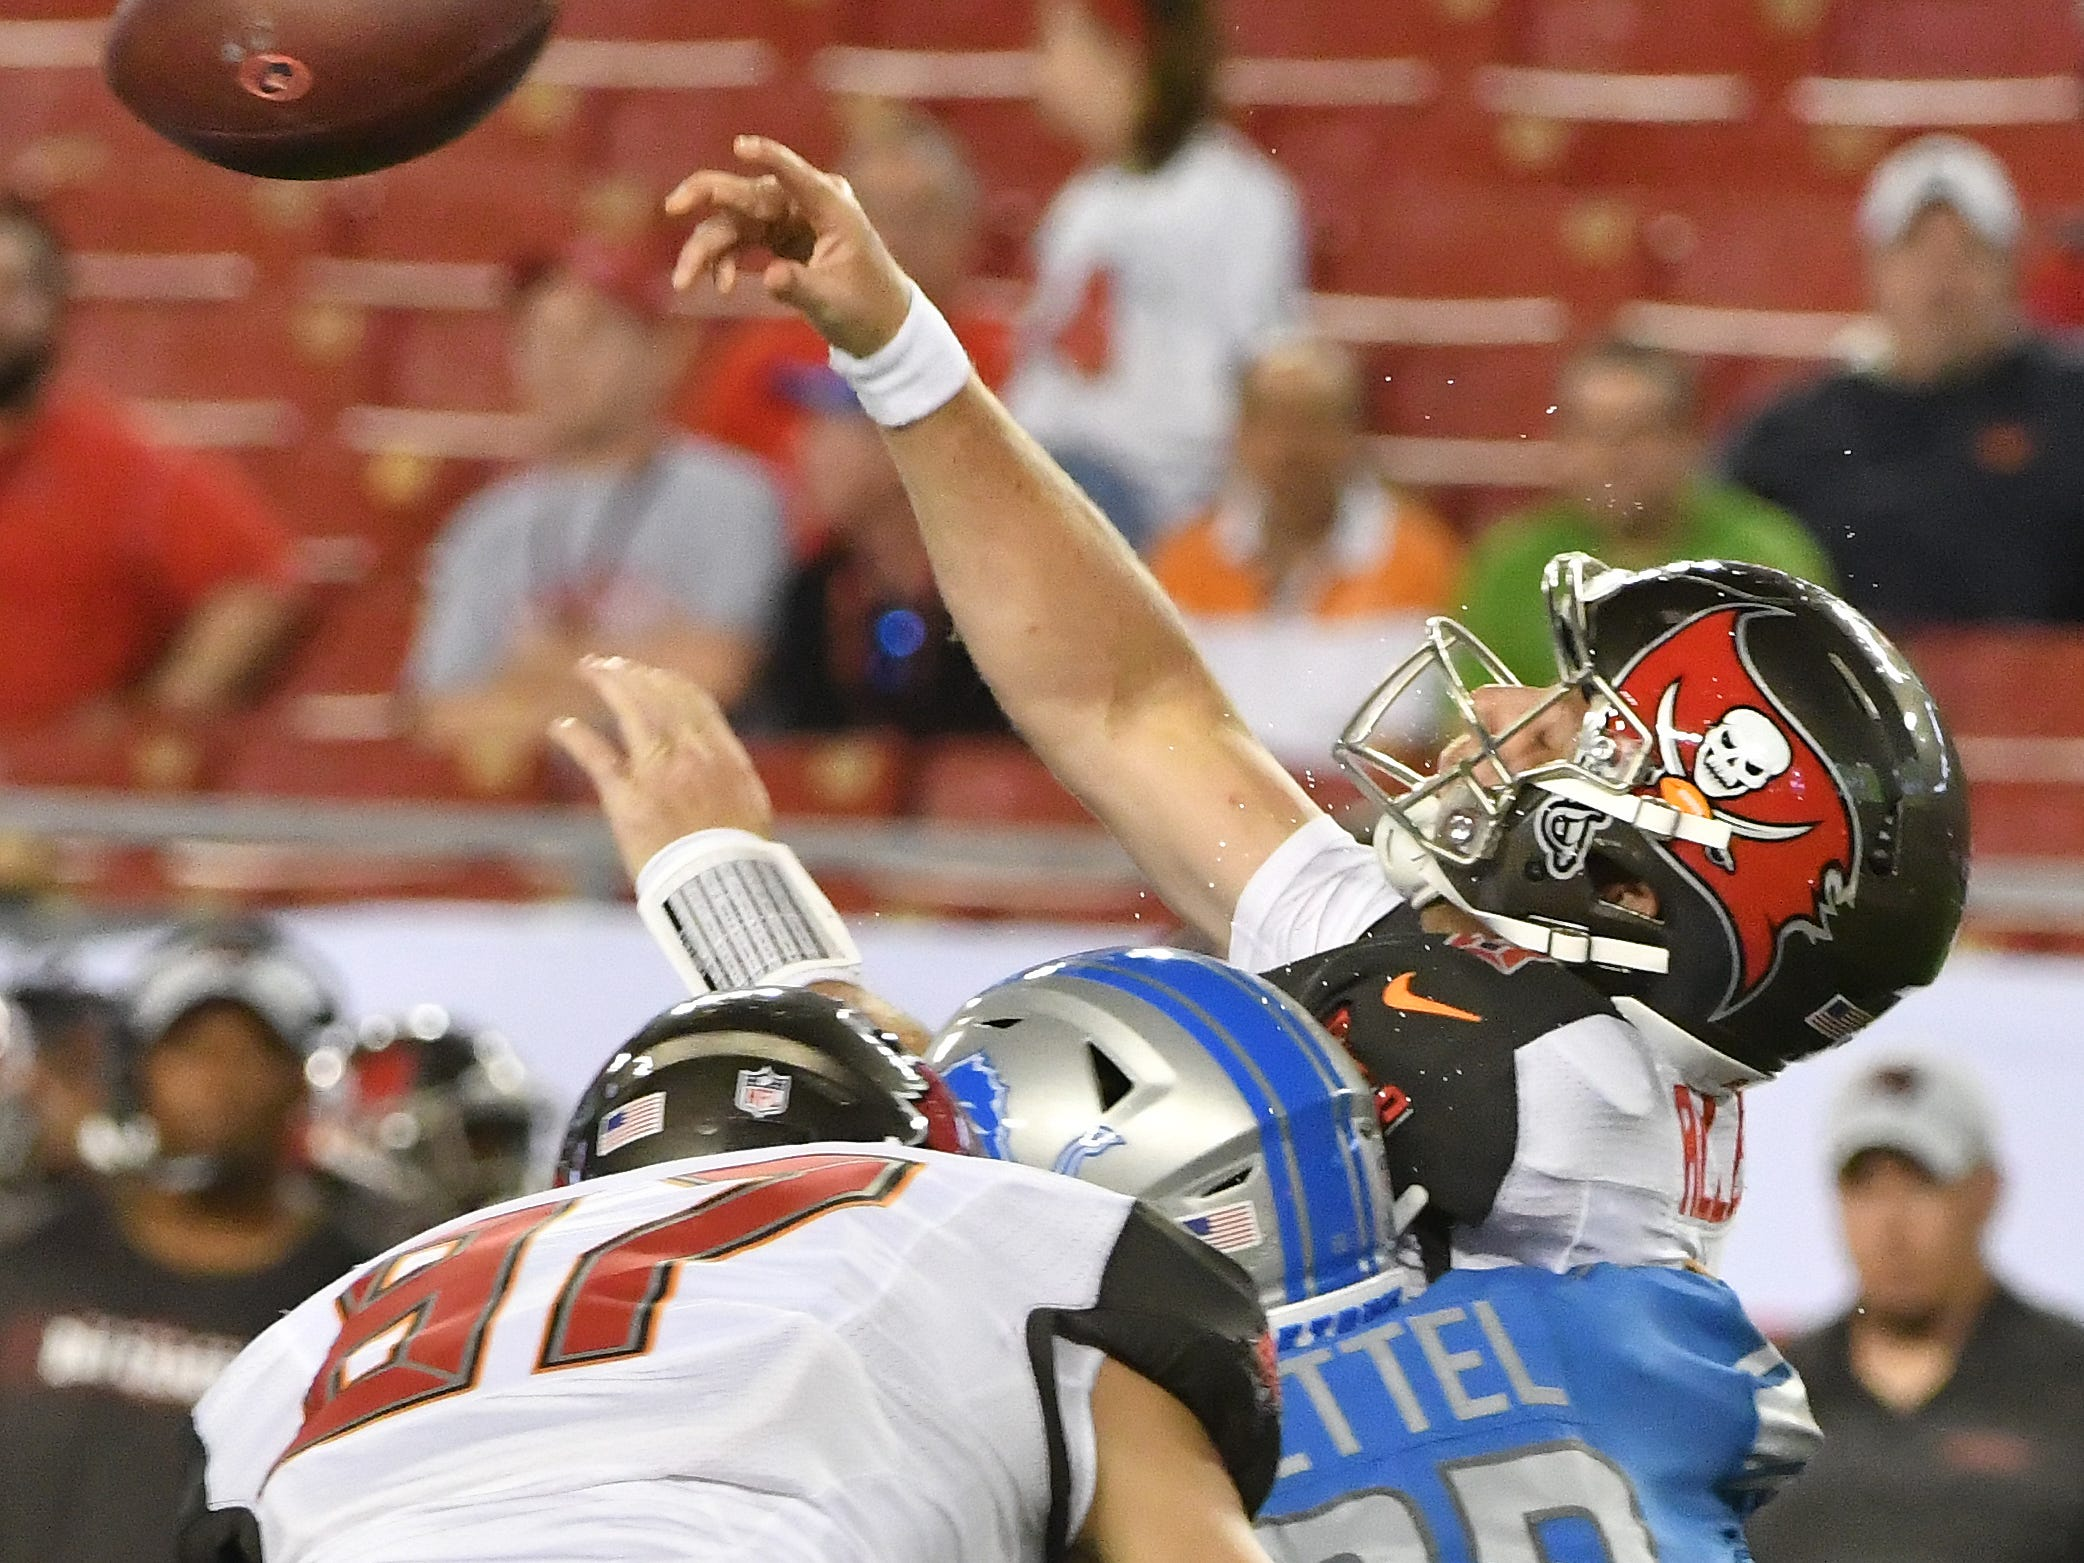 Lions' Anthony Zettel nails Buccaneers quarterback Austin Allen for an incompletion in the fourth quarter.